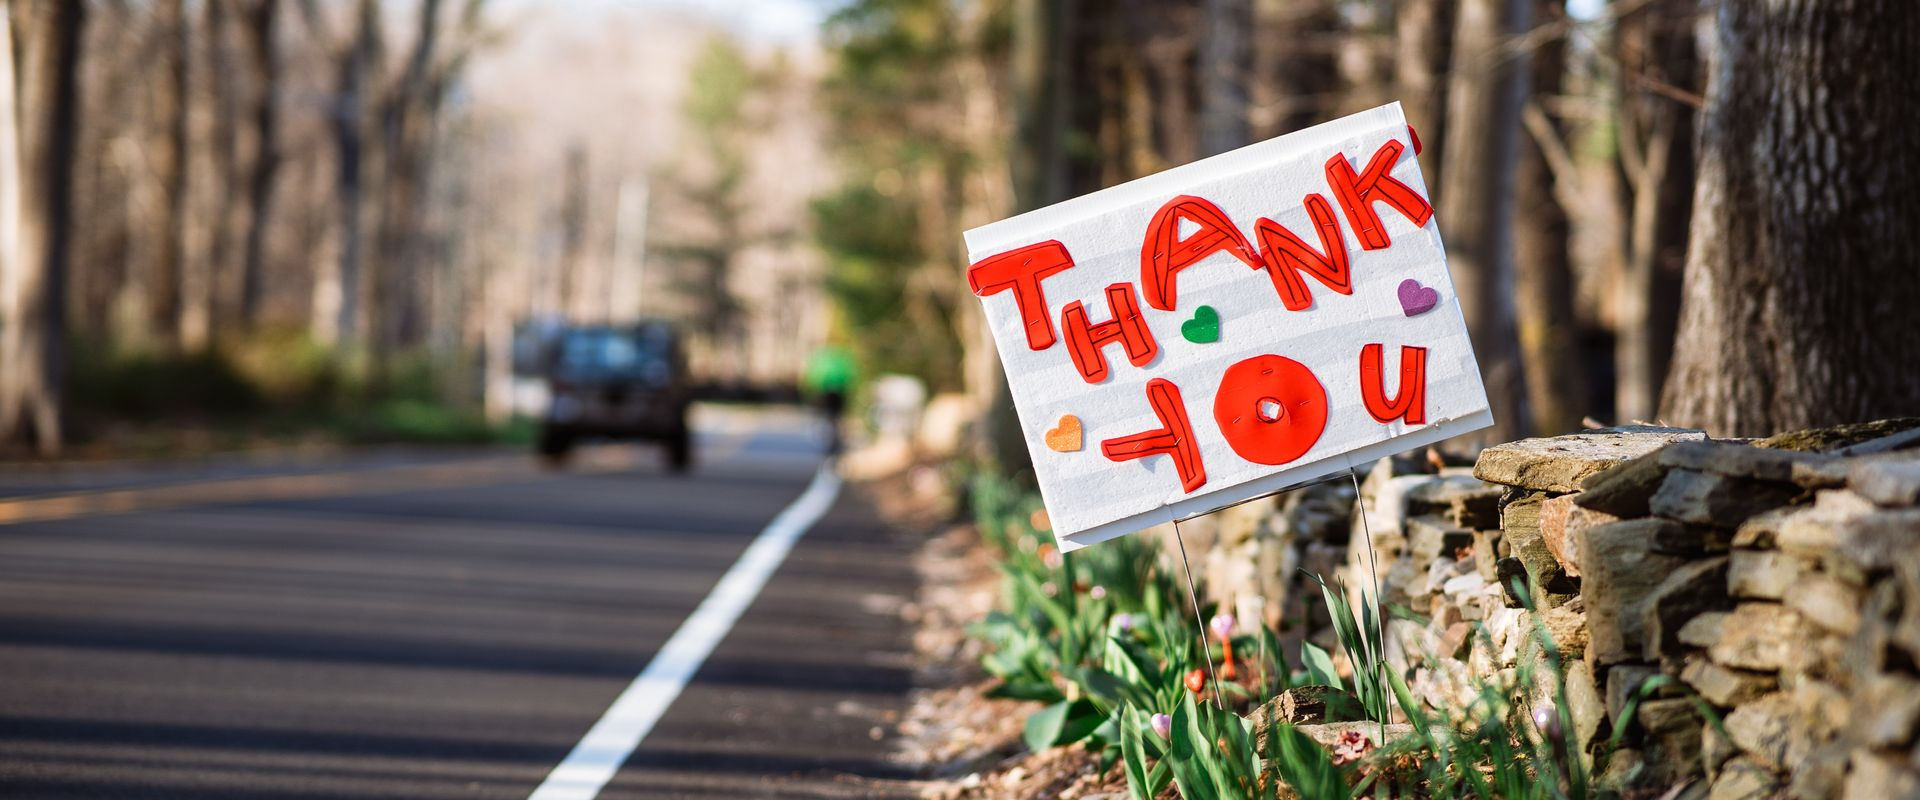 thank you sign on road